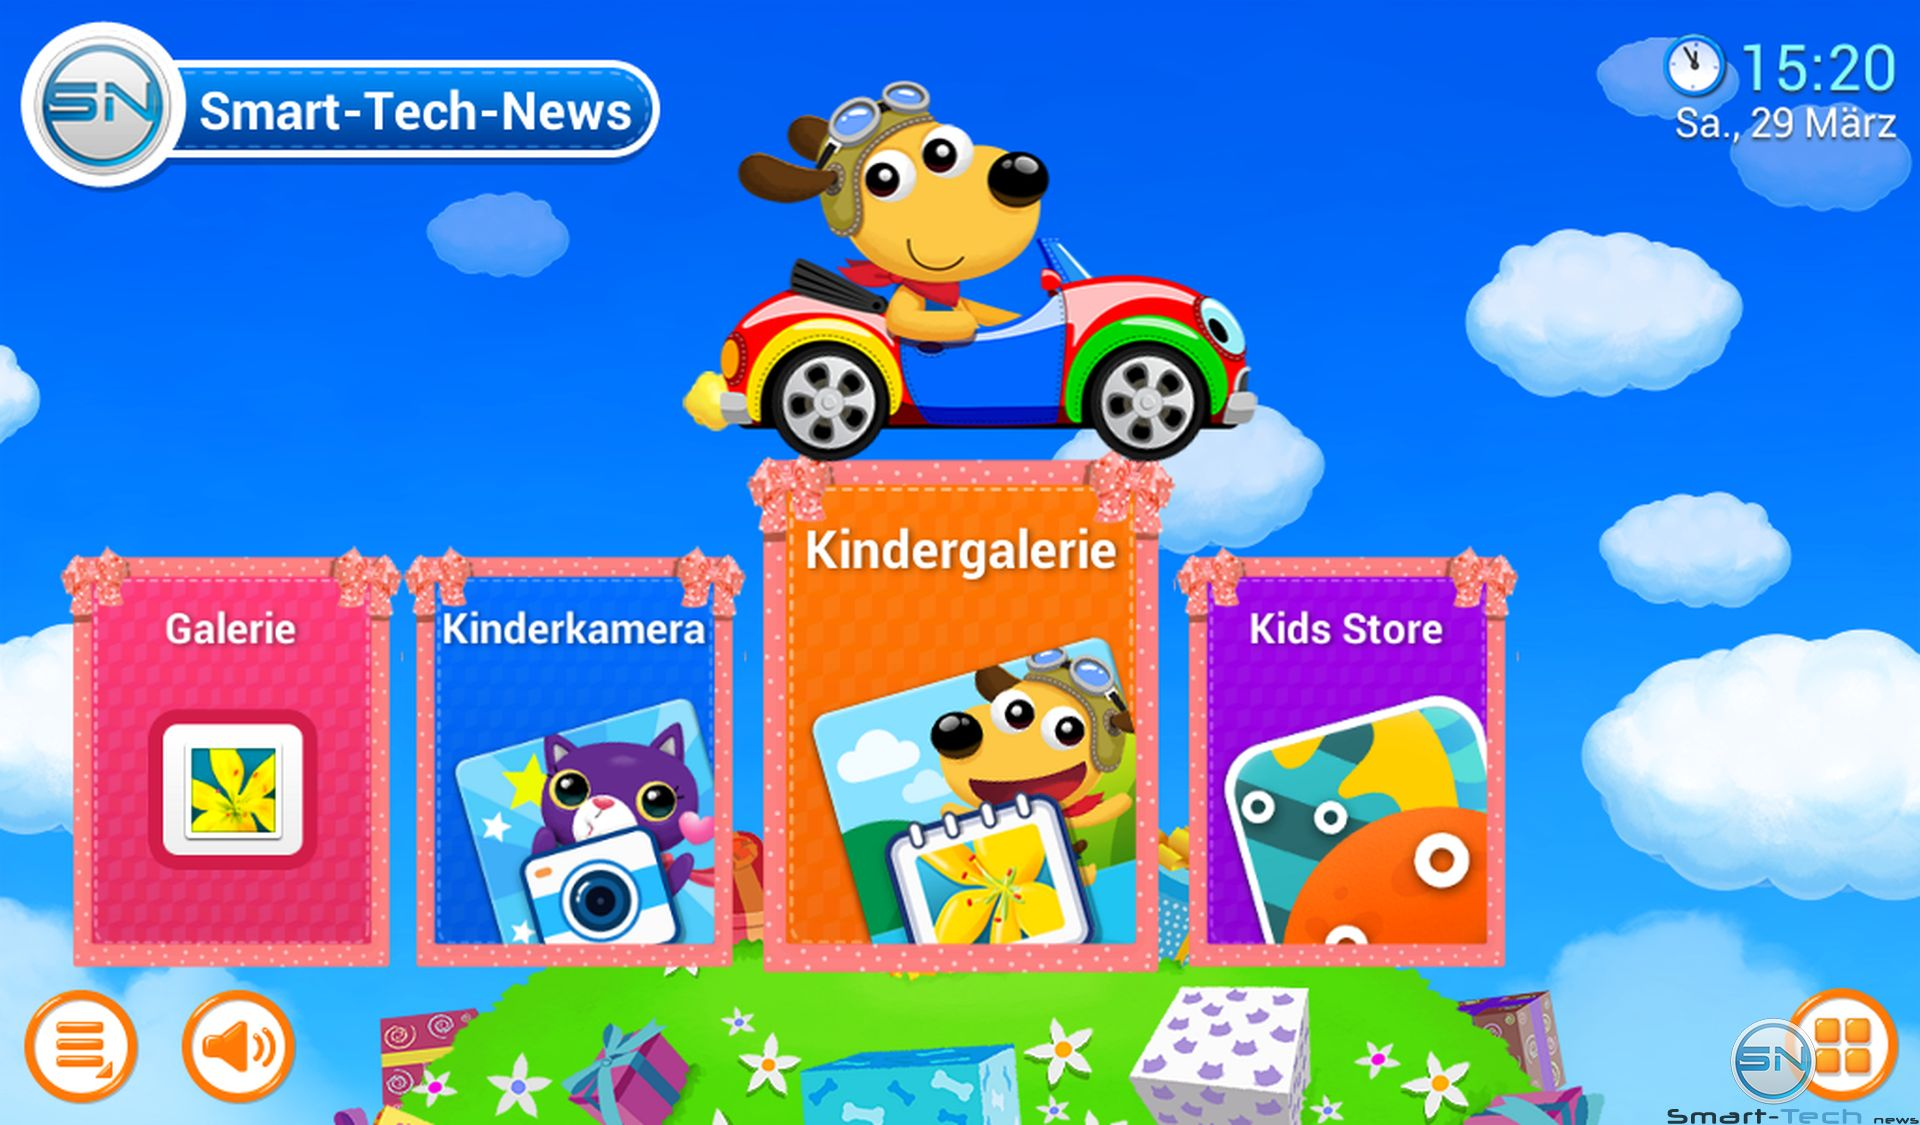 Samsung Galaxy Tab 3 Kids -Kinderoberfläche - smart-tech-news